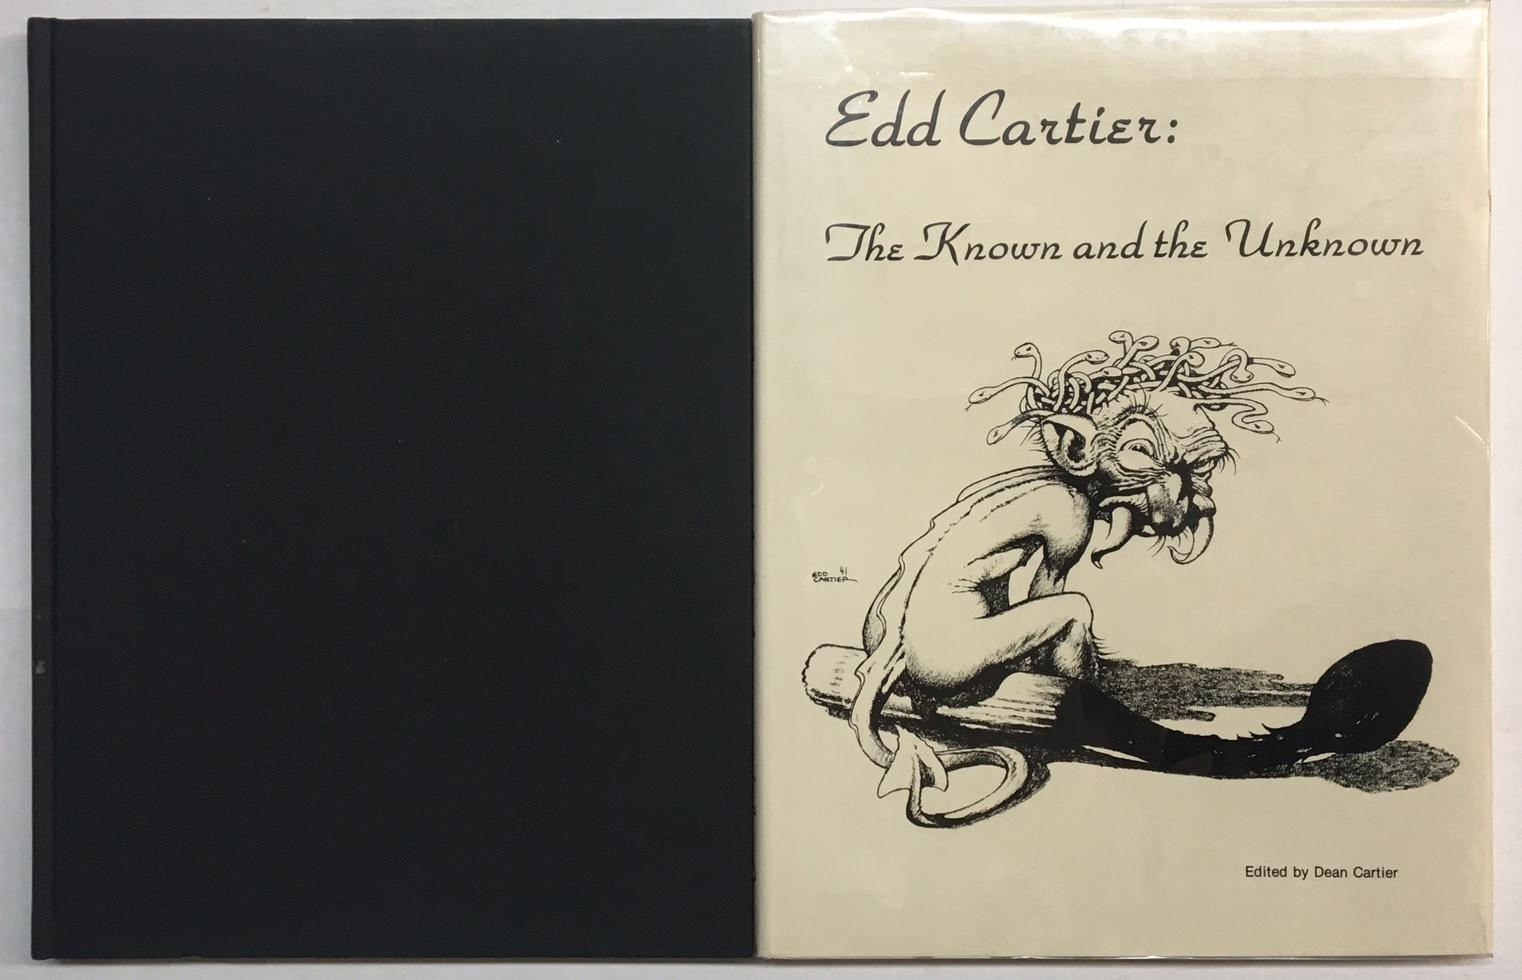 Edd Cartier: The Known and the Unknown Cartier, Dean - Editor [Fine] [Hardcover] Although unstated, this is one of only 26 publishers copies for private distribution to the contributants. Signed by Edd Cartier, Dean Cartier, Gerry de la Ree and Helen de la Ree.